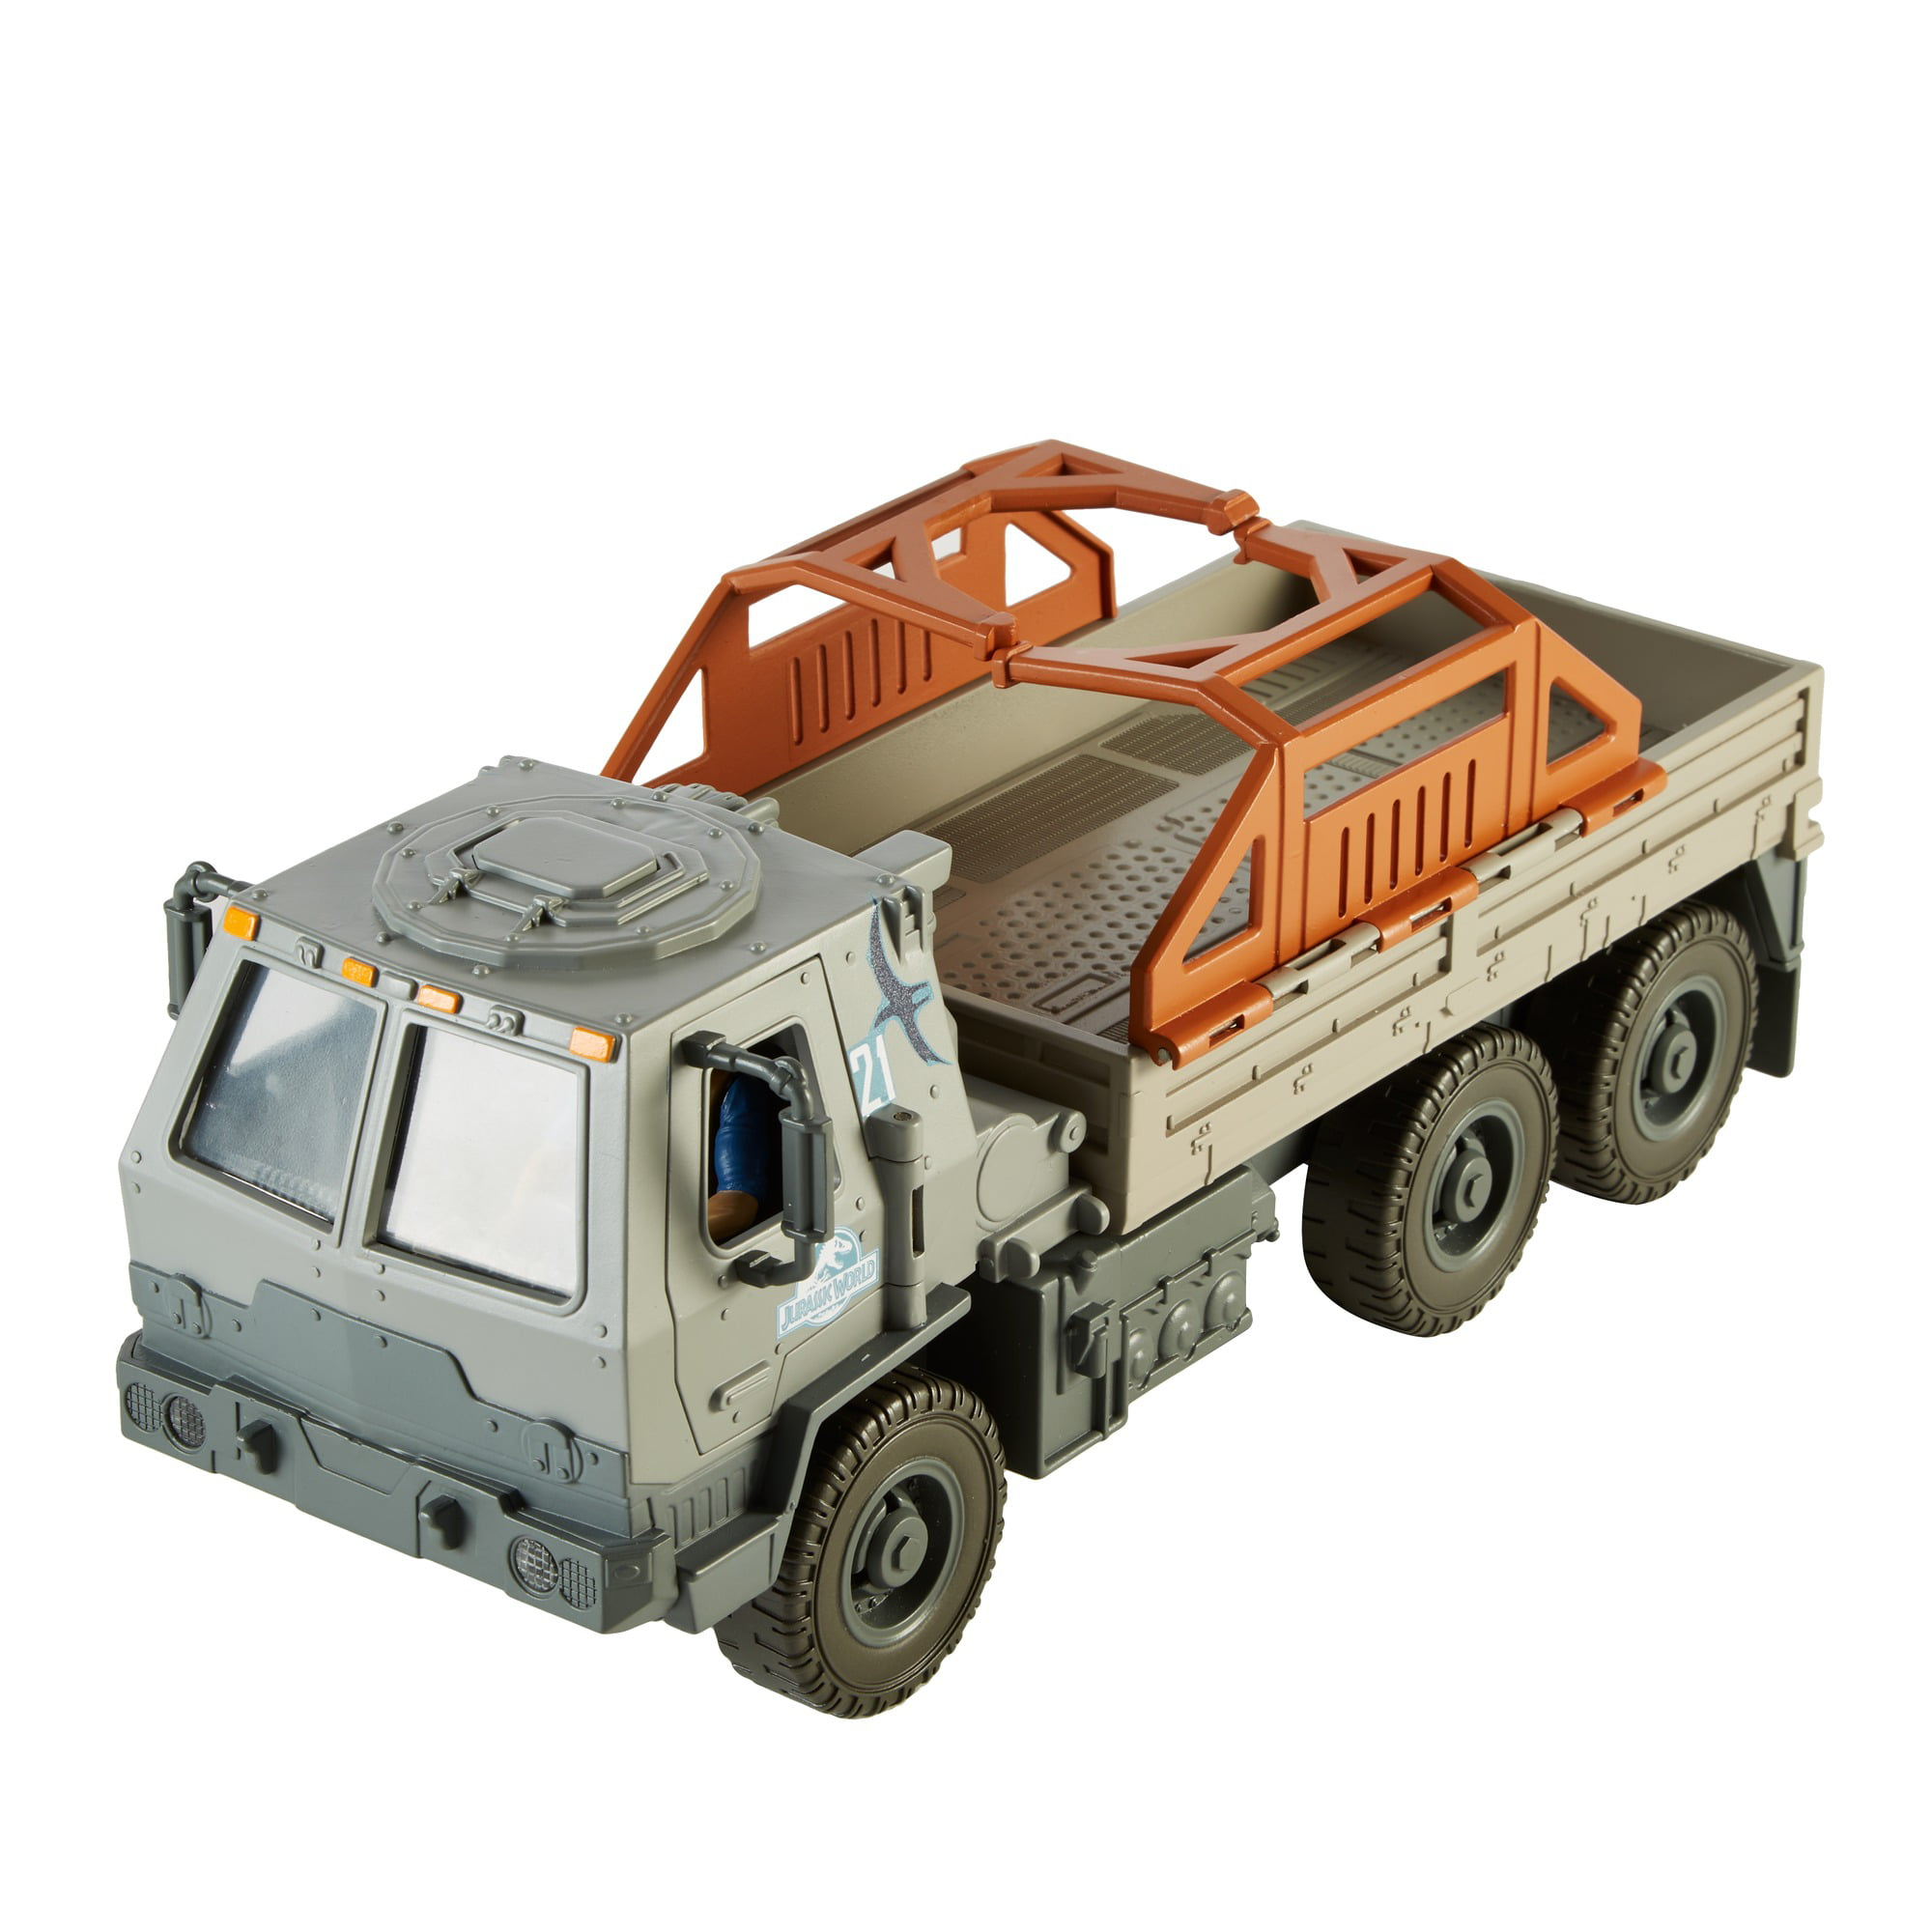 Matchbox Jurassic World Vehicle Off-road Rescue Rig by Mattel